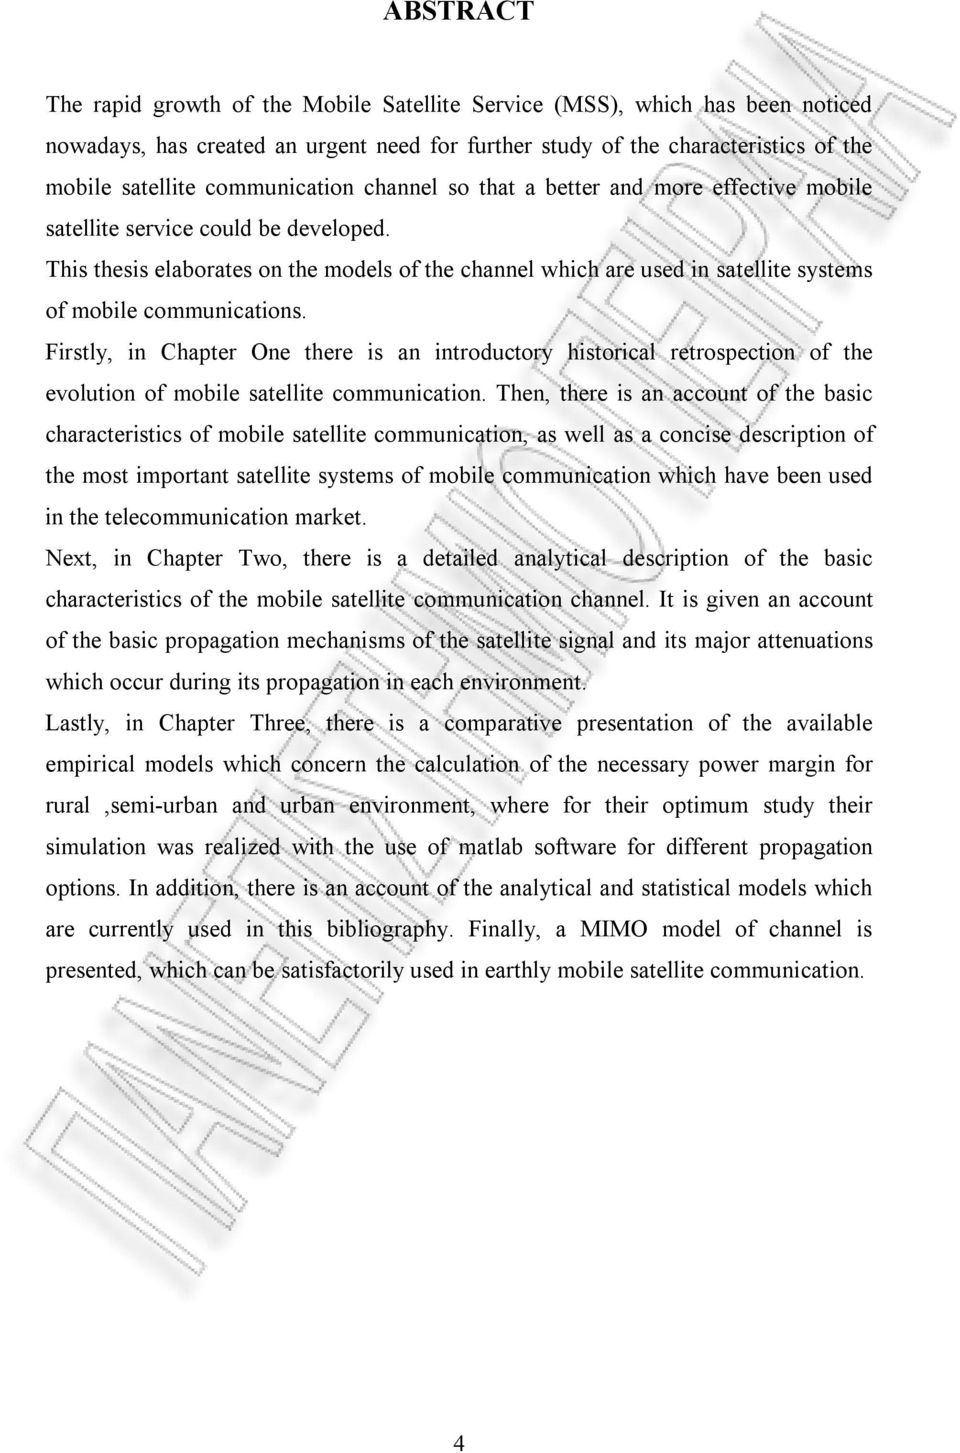 This thesis elaborates on the models of the channel which are used in satellite systems of mobile communications.